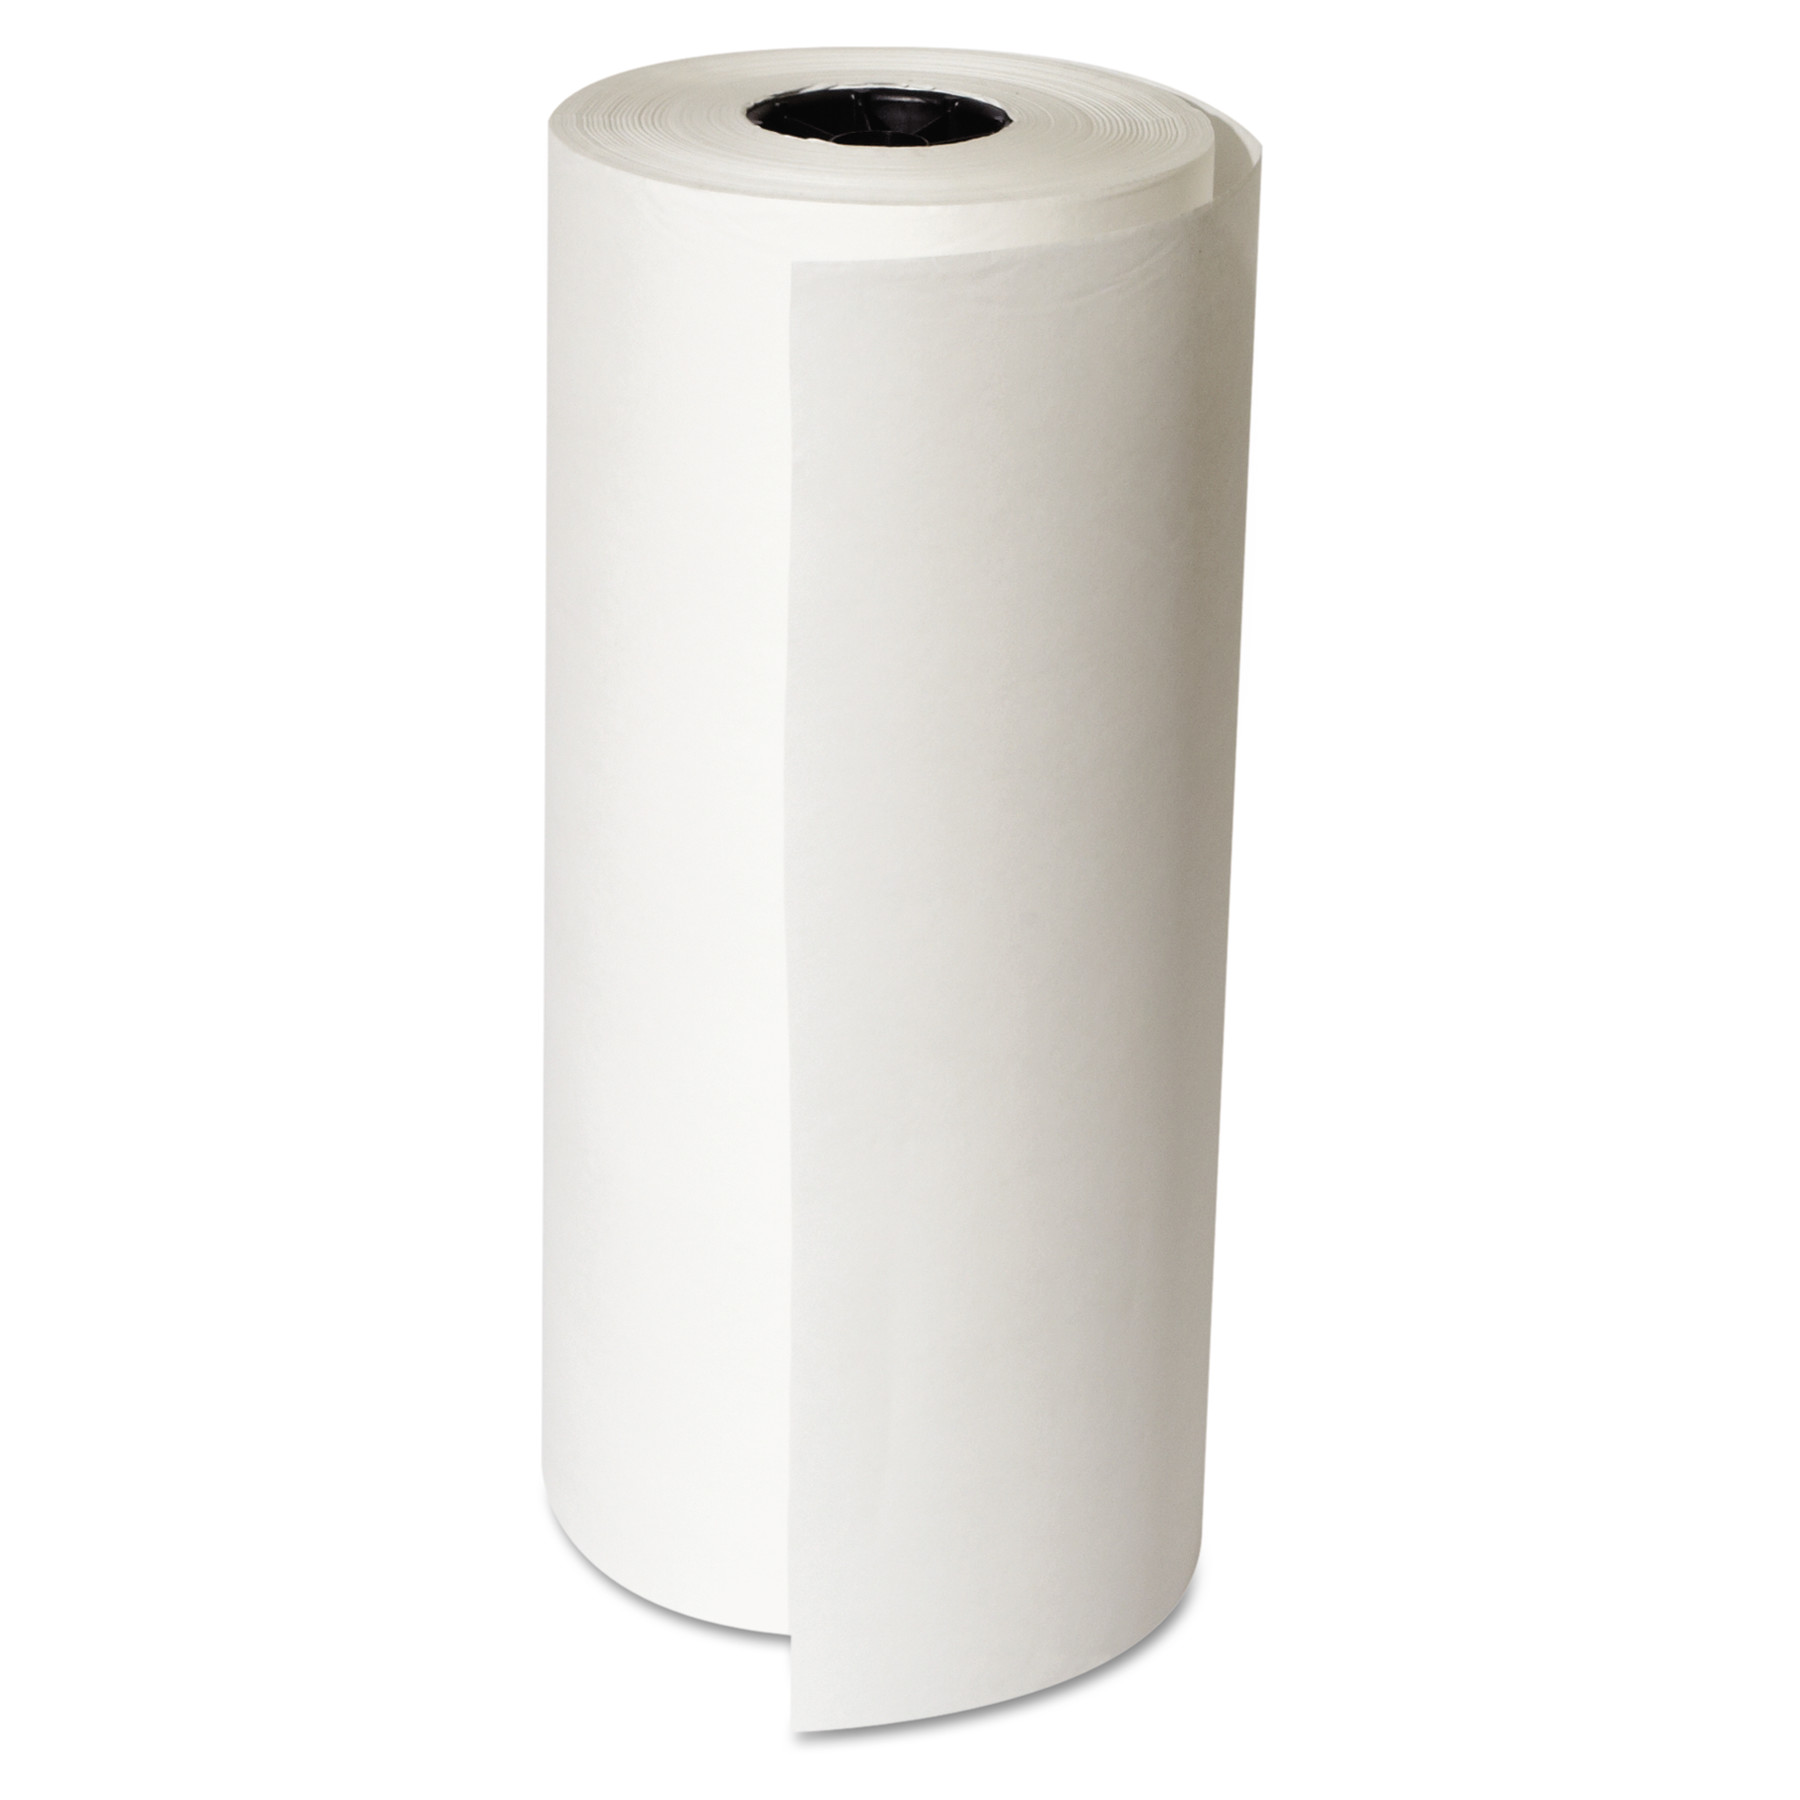 "Boardwalk Butcher Paper, 15"" x 900ft, White by BOARDWALK"